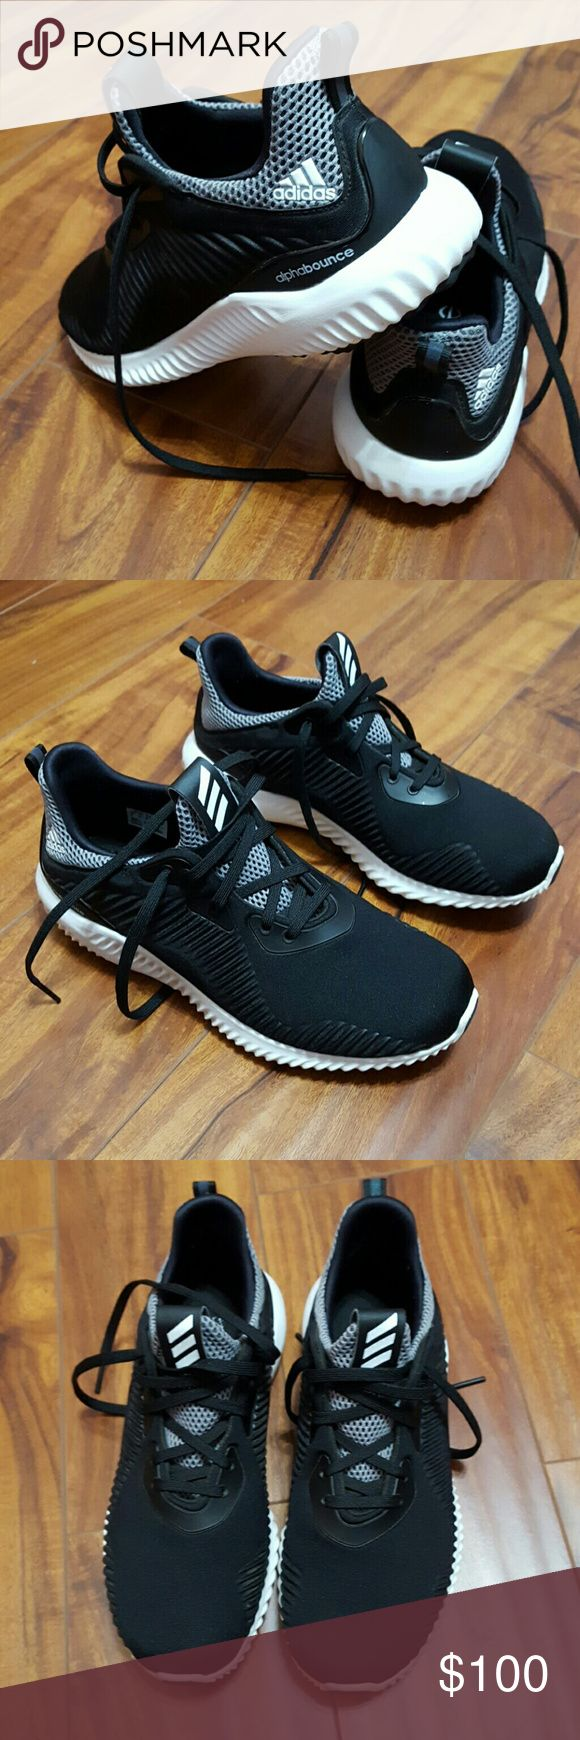 Adidas Alphabounce . Just showing off ?? Only selling for the price listed. I just Love love this shoes. Bought them a week ago. Good for the gym, running, and even hiking. But i cancelled.ny gym membership. So they have been sitting in my closet.  They are kids size 5y. Im 7 and they fit perrrrrfect! Adidas Shoes Athletic Shoes